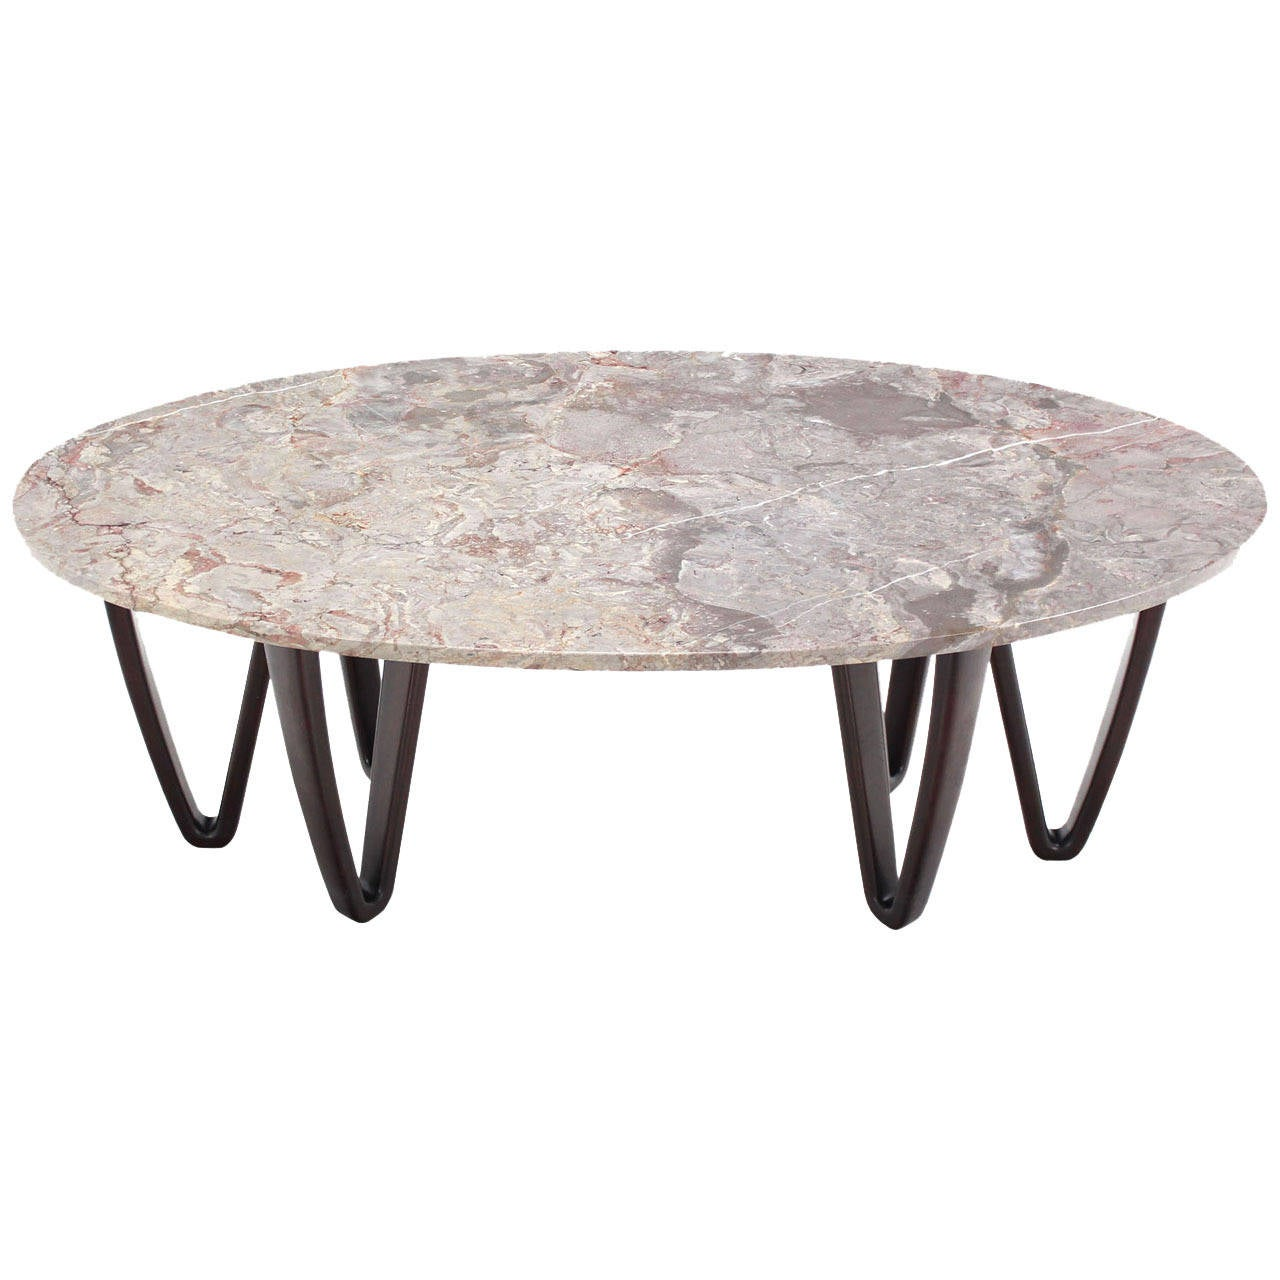 Oval marble top coffee table on wooden hair pin legs at 1stdibs Coffee tables with marble tops